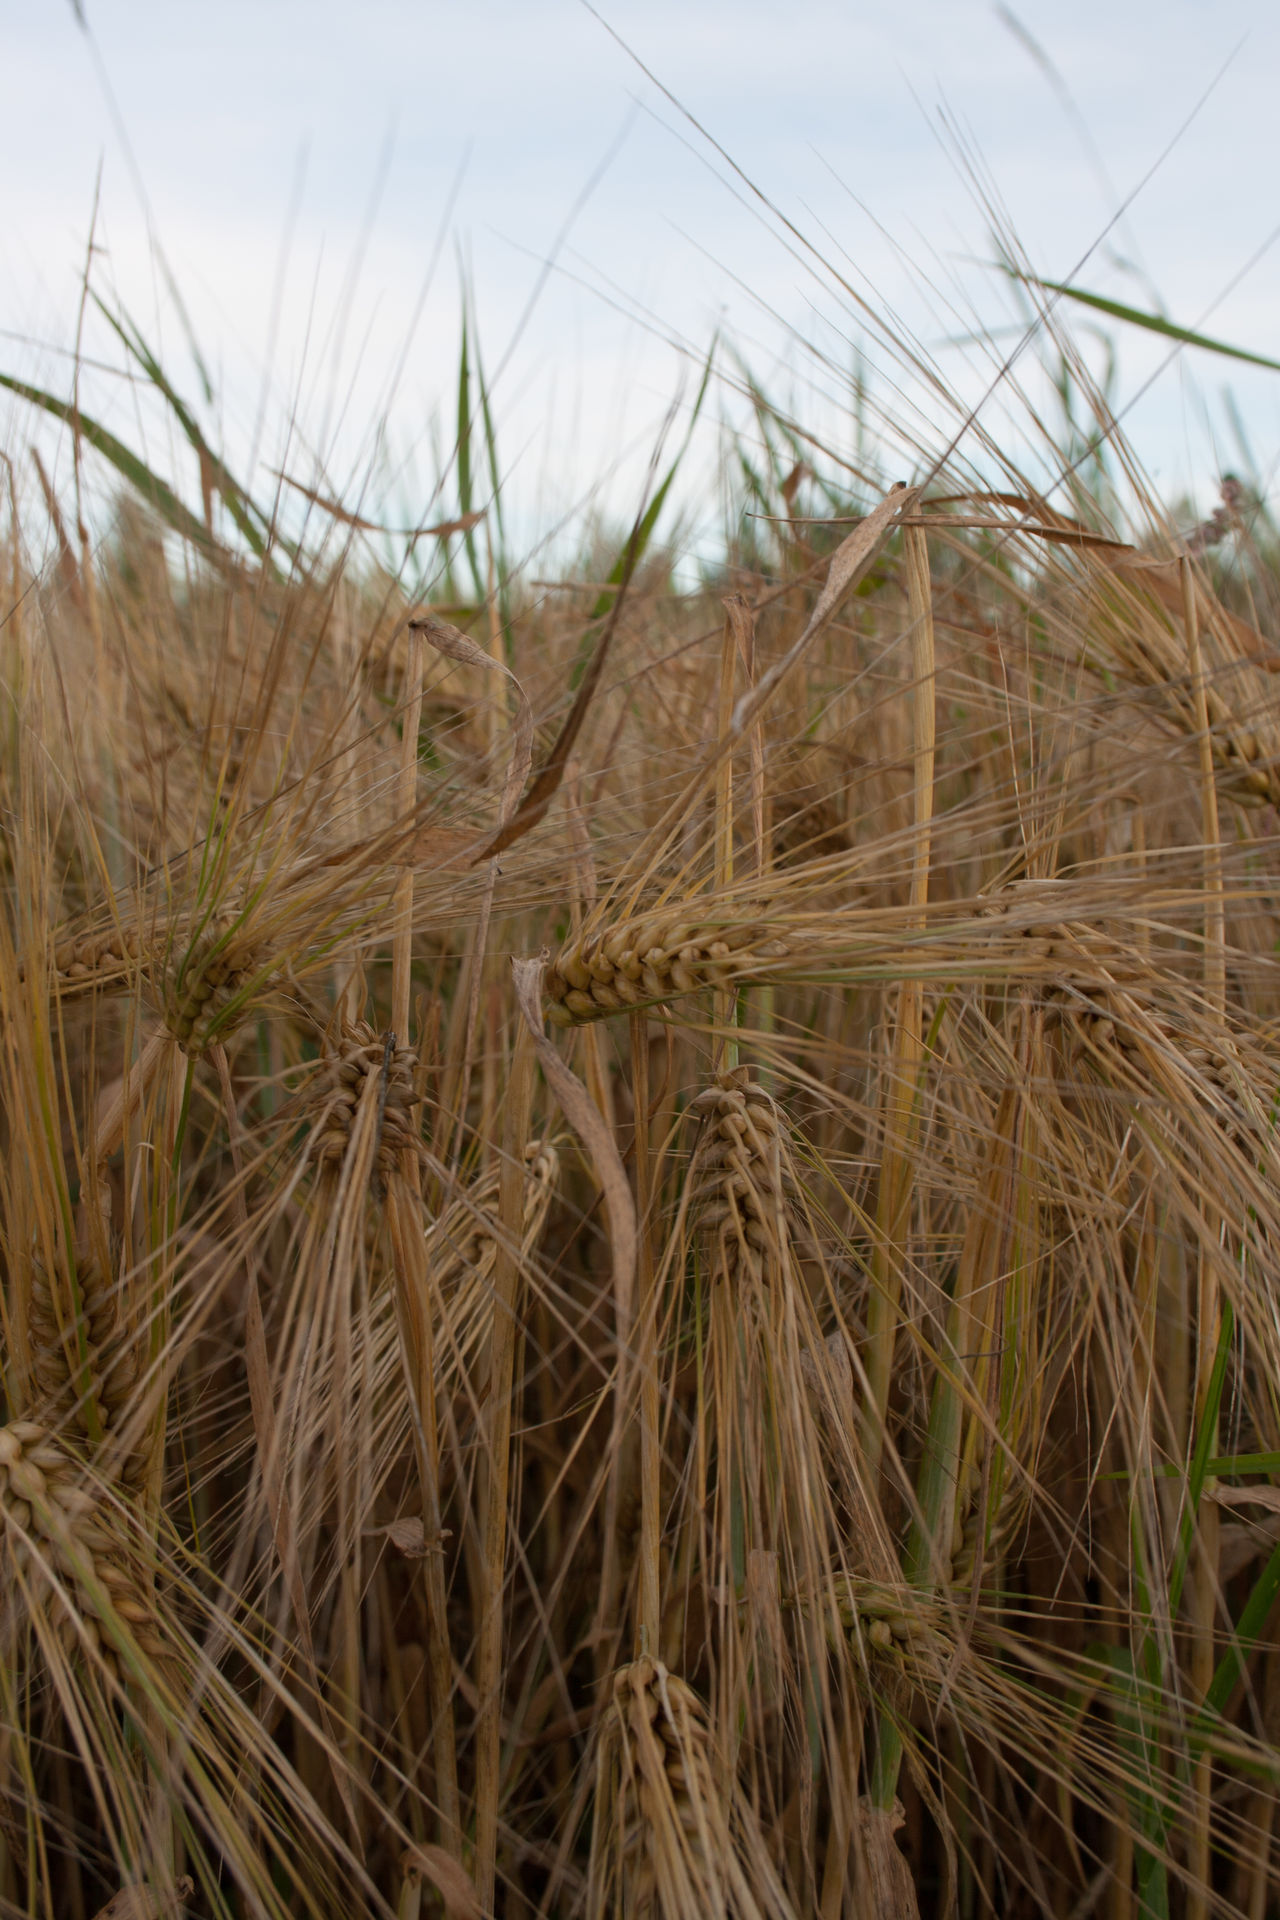 A field of barley. Agriculture Barley Barley Field Beauty In Nature Close-up Crop  Cultivated Land Day Field Focus On Foreground Growing Landscape Nature Outdoors Plant Canon Eos 400d Korn Cebada Ohra